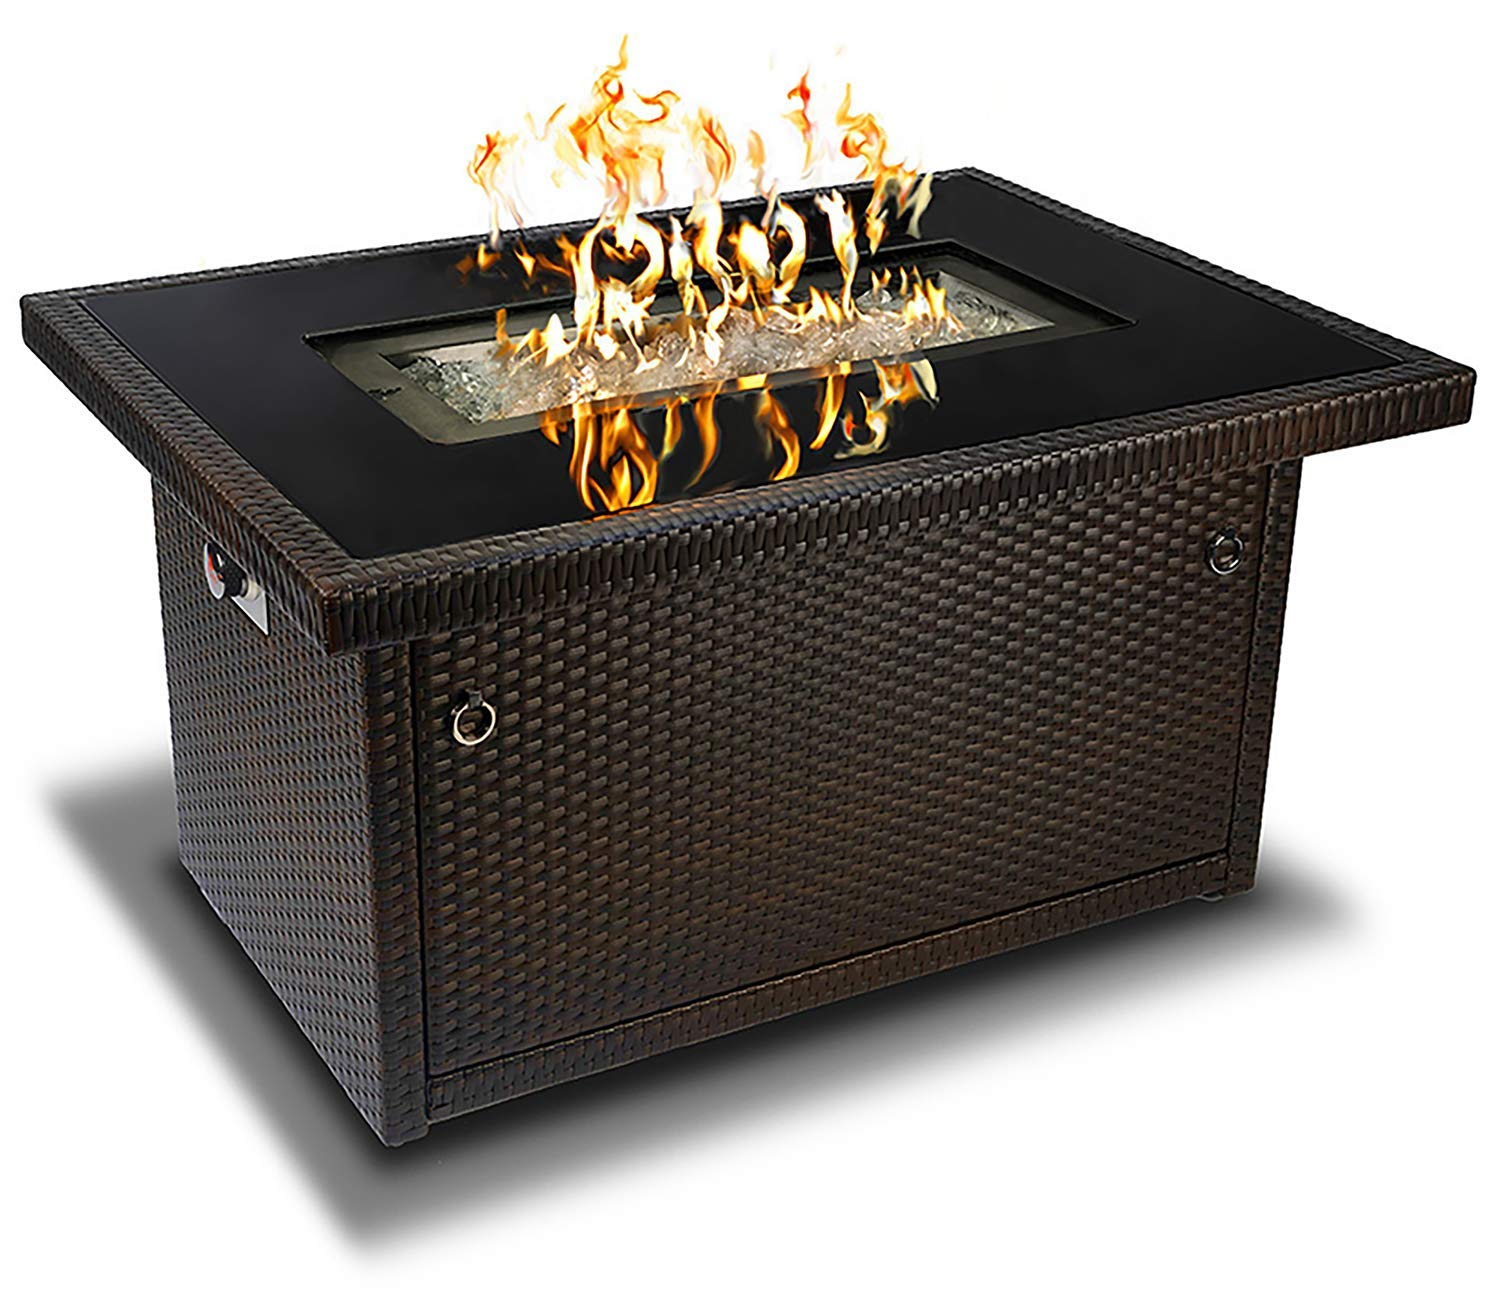 Outland Fire Table, Aluminum Frame Propane Fire Pit Table with Black Tempered Glass Tabletop Resin Wicker Panels & Arctic Ice Glass Rocks, Auto-ignition (Espresso Brown/Rectangle) product image